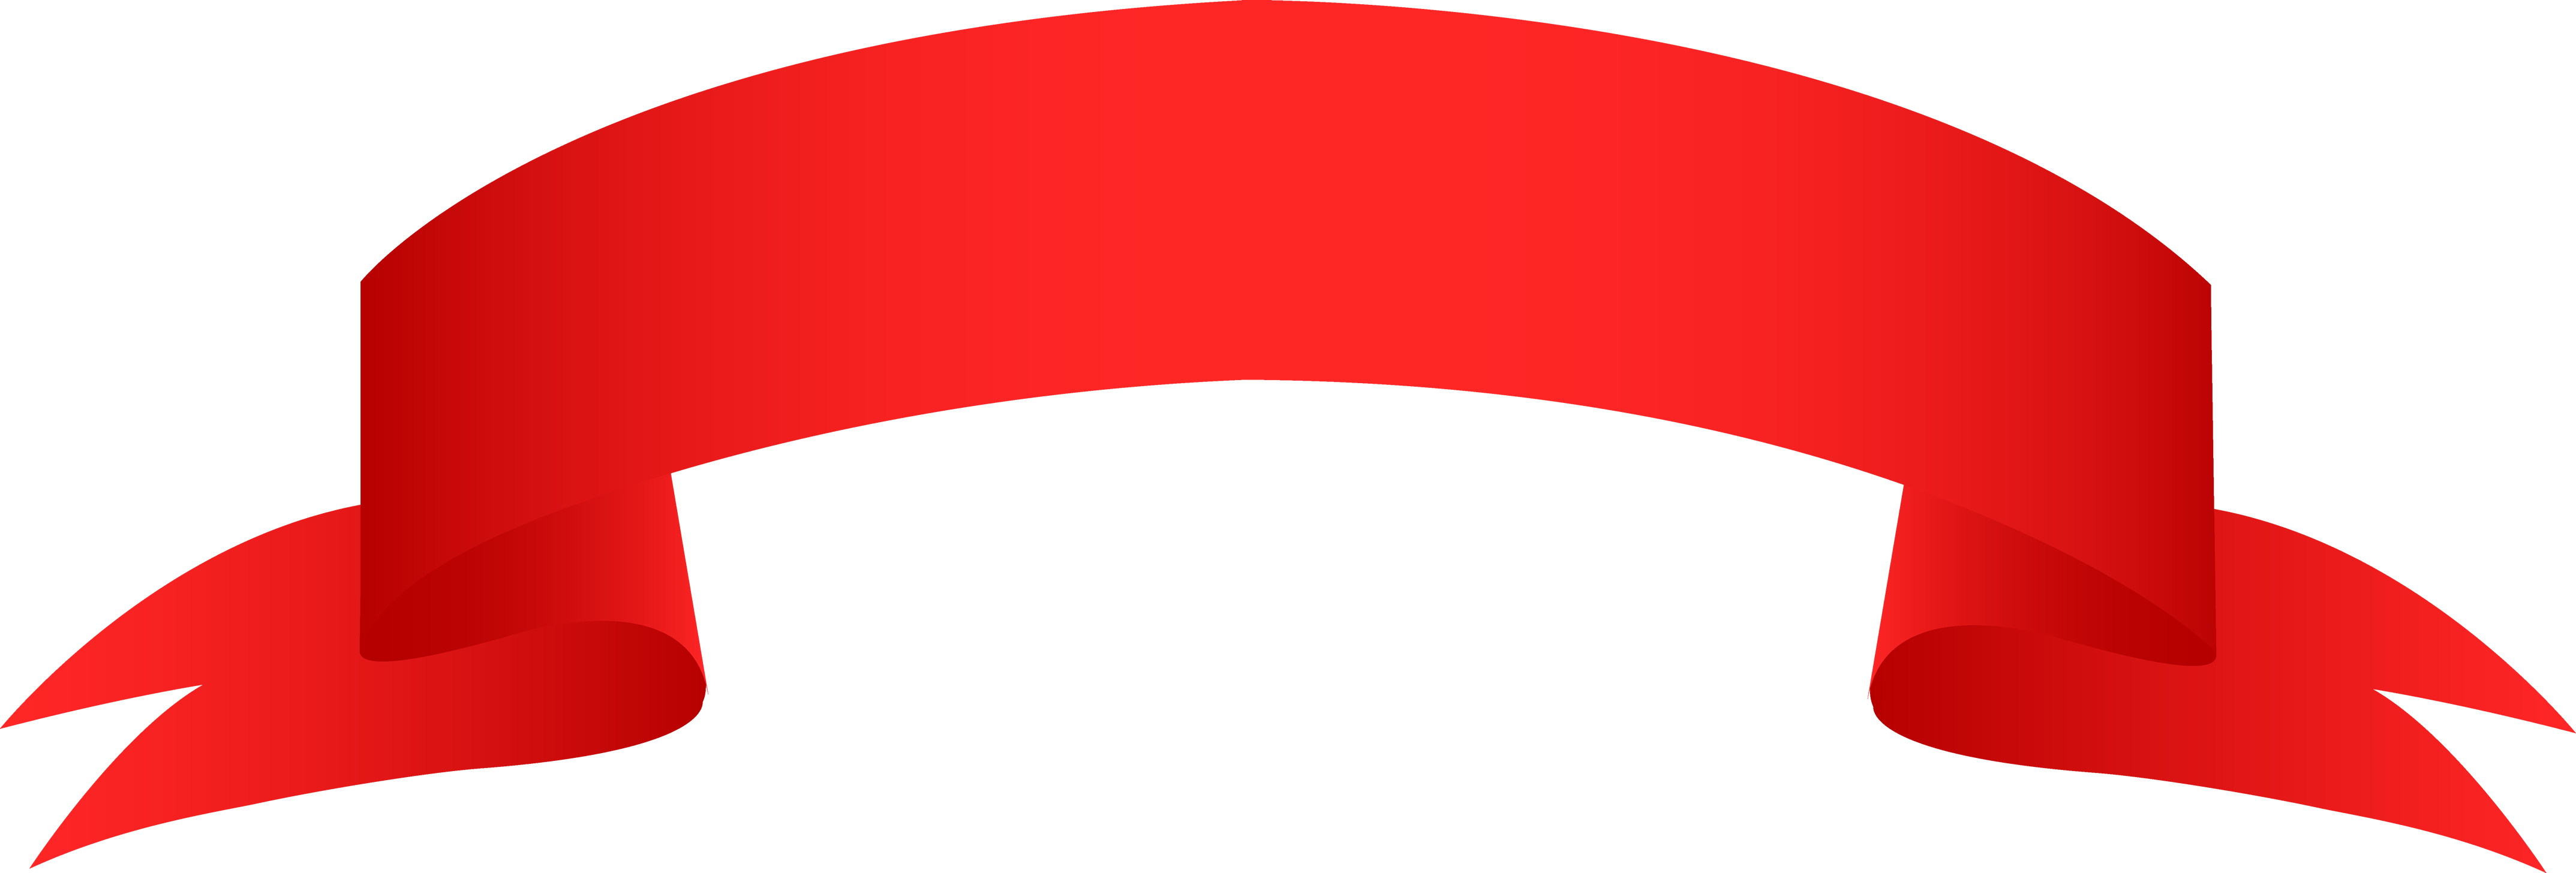 Red Ribbon PNG Image.